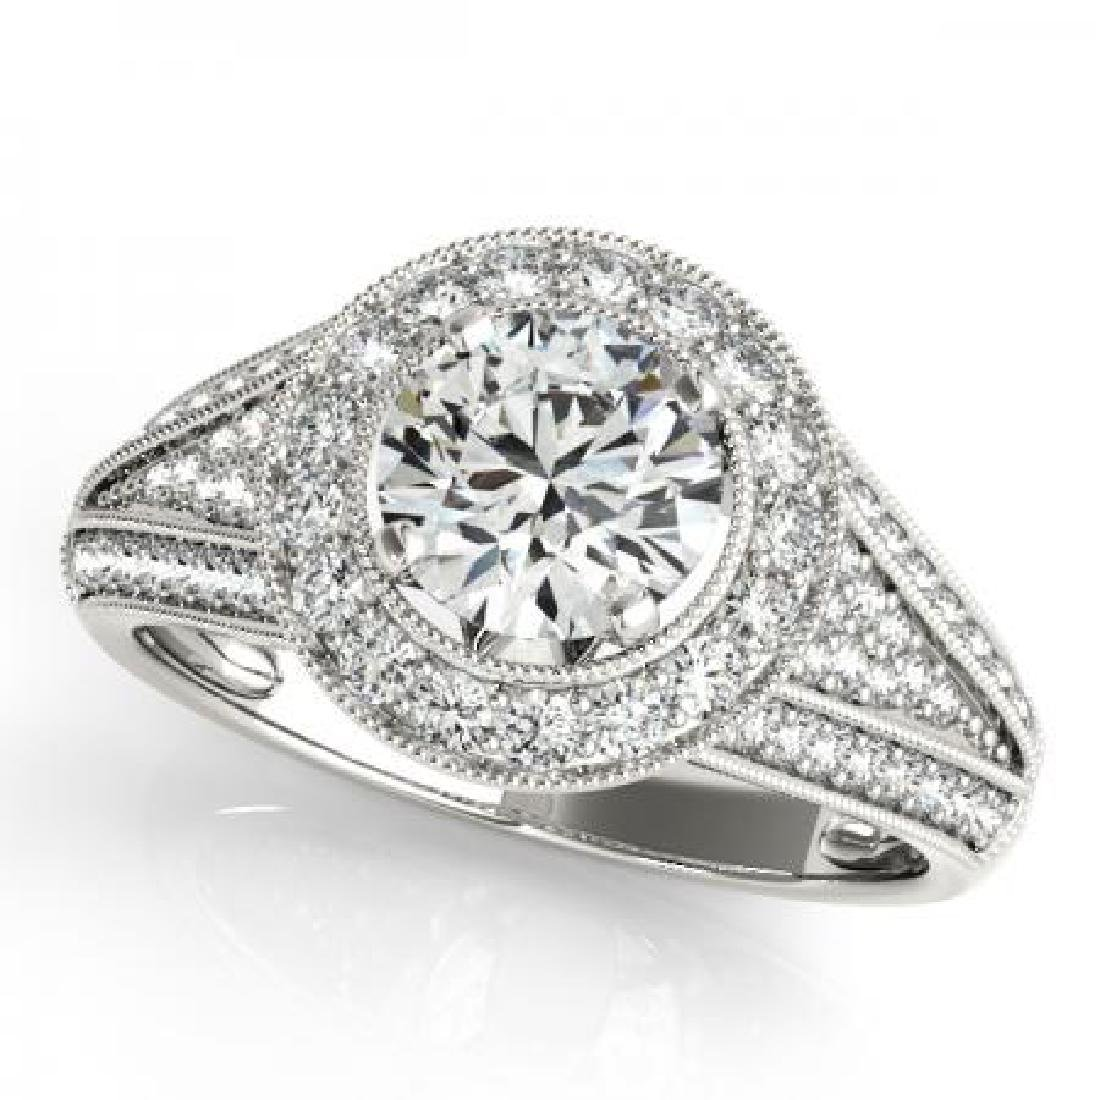 CERTIFIED PLATINUM 1.09 CT G-H/VS-SI1 DIAMOND HALO ENGA